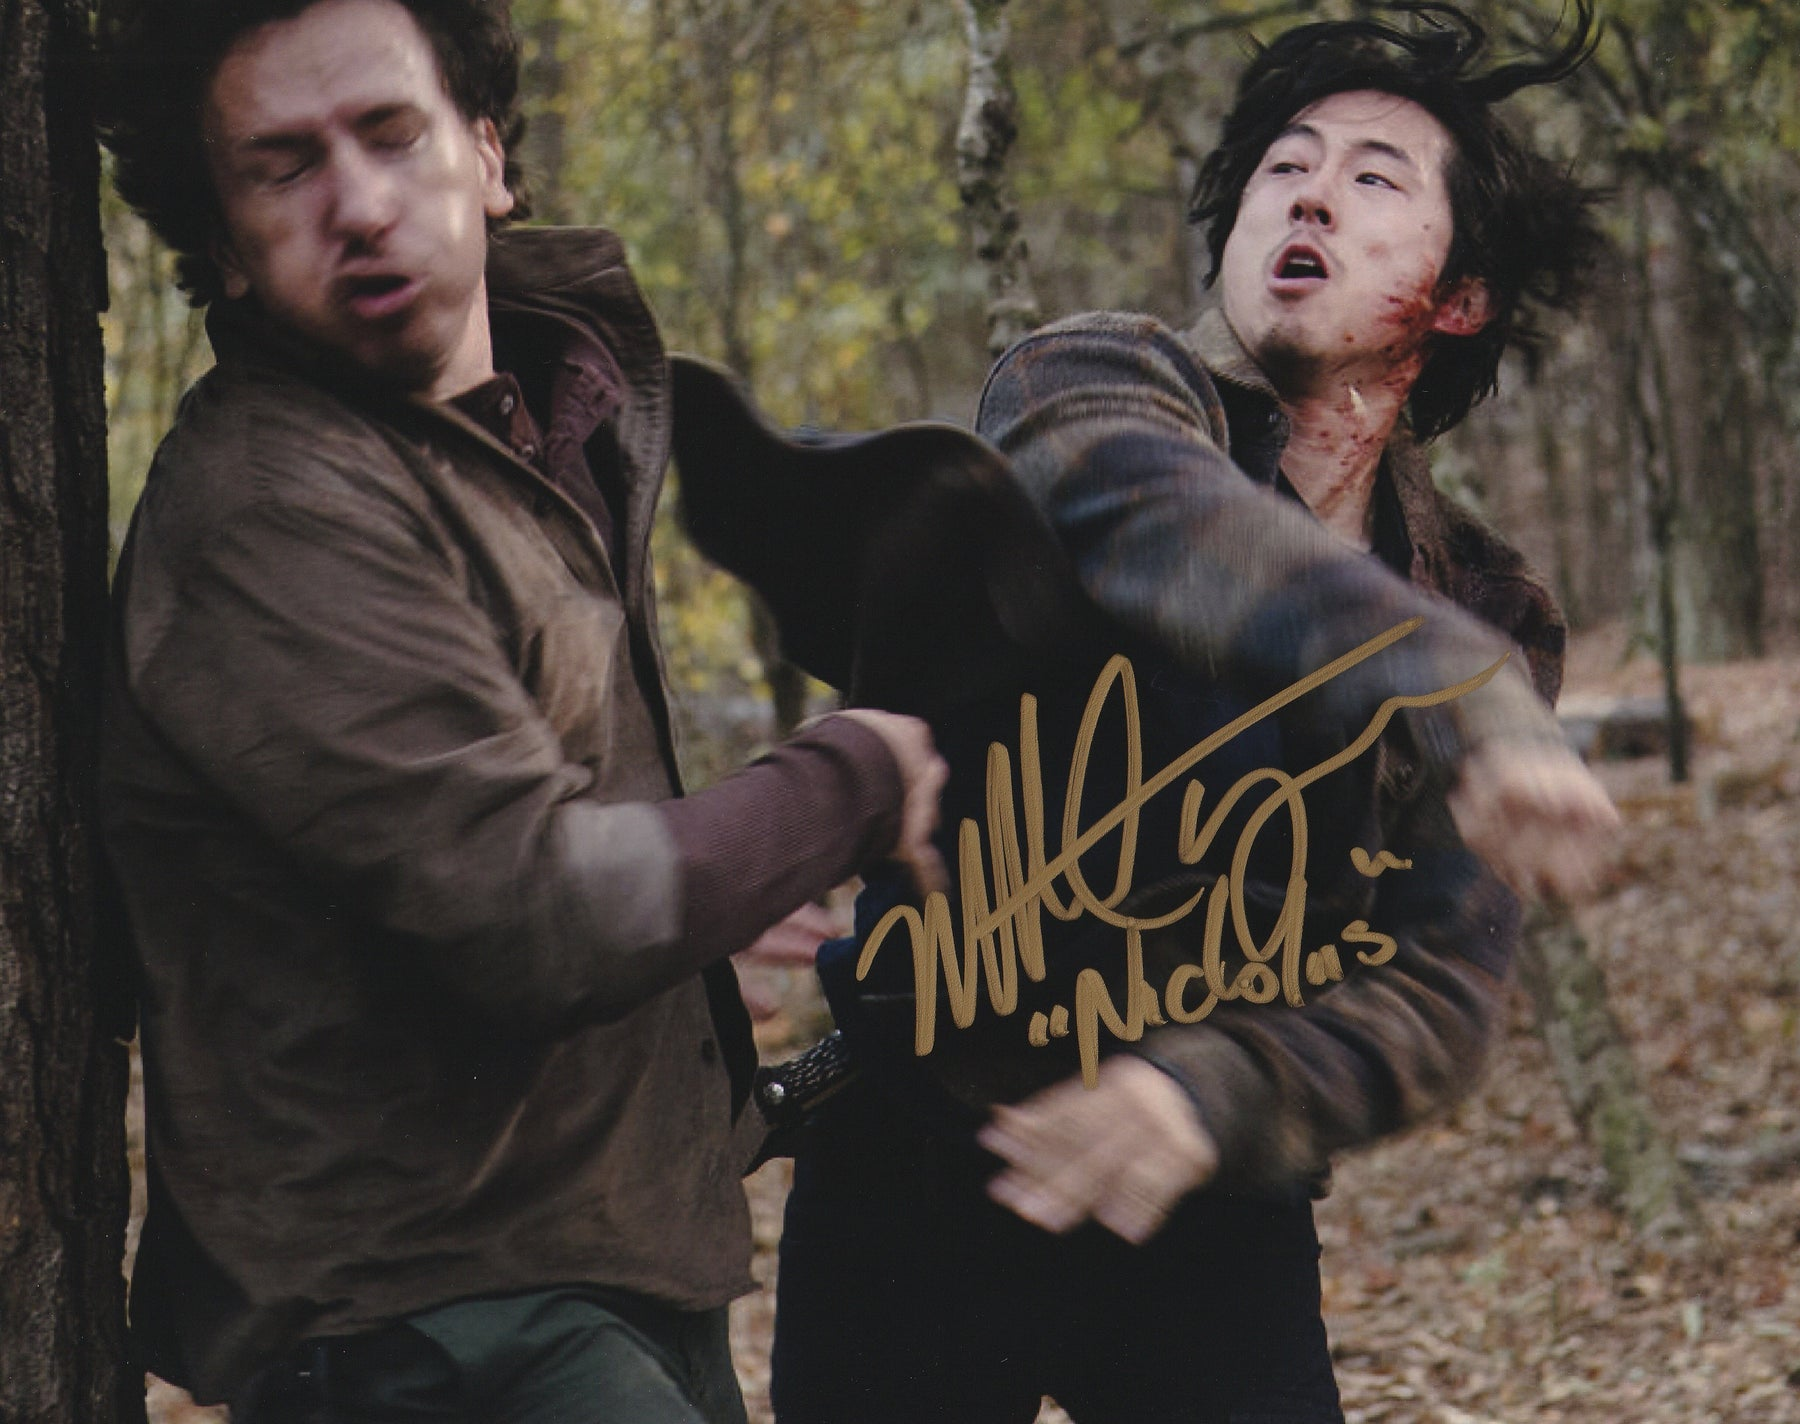 Michael Traynor Autograph 8x10 Photo The Walking Dead Signed COA